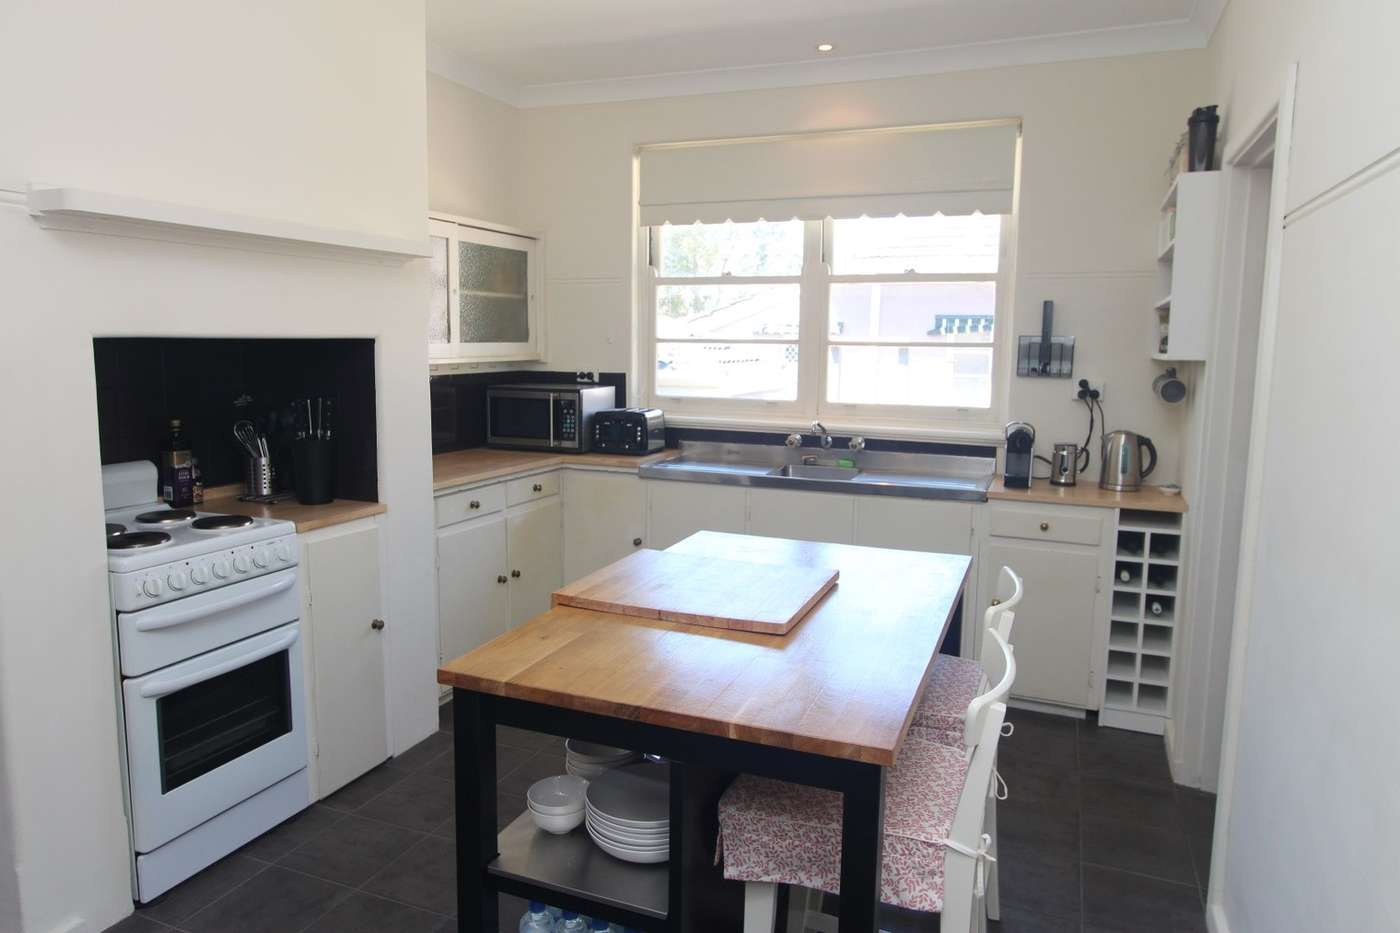 Main view of Homely house listing, 32 Beatrice Street, Doubleview, WA 6018